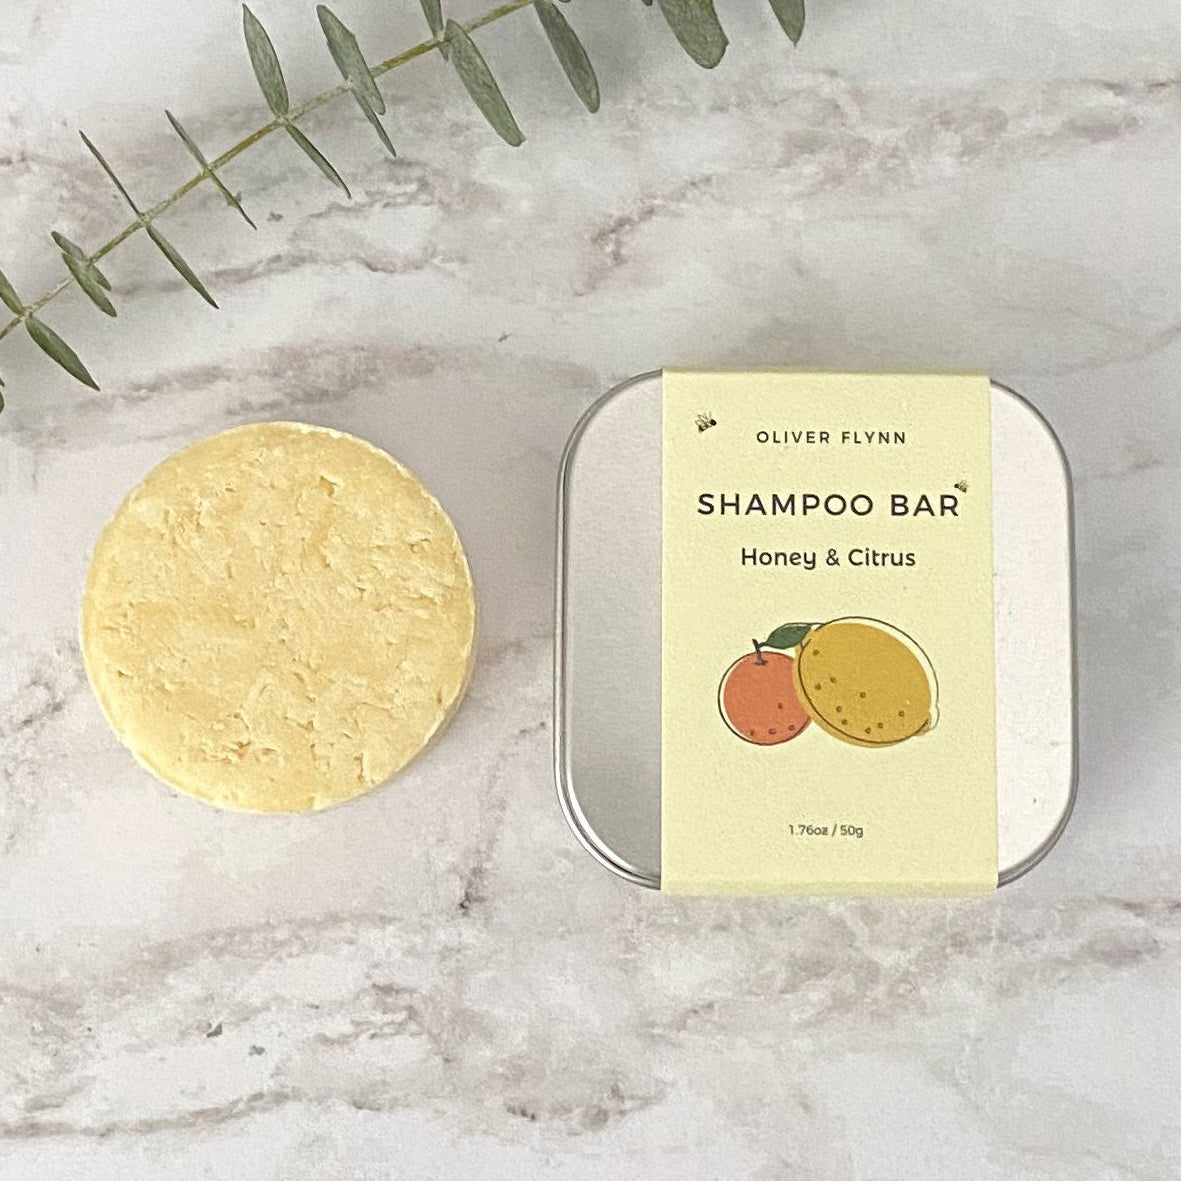 Honey & Citrus Shampoo Bar